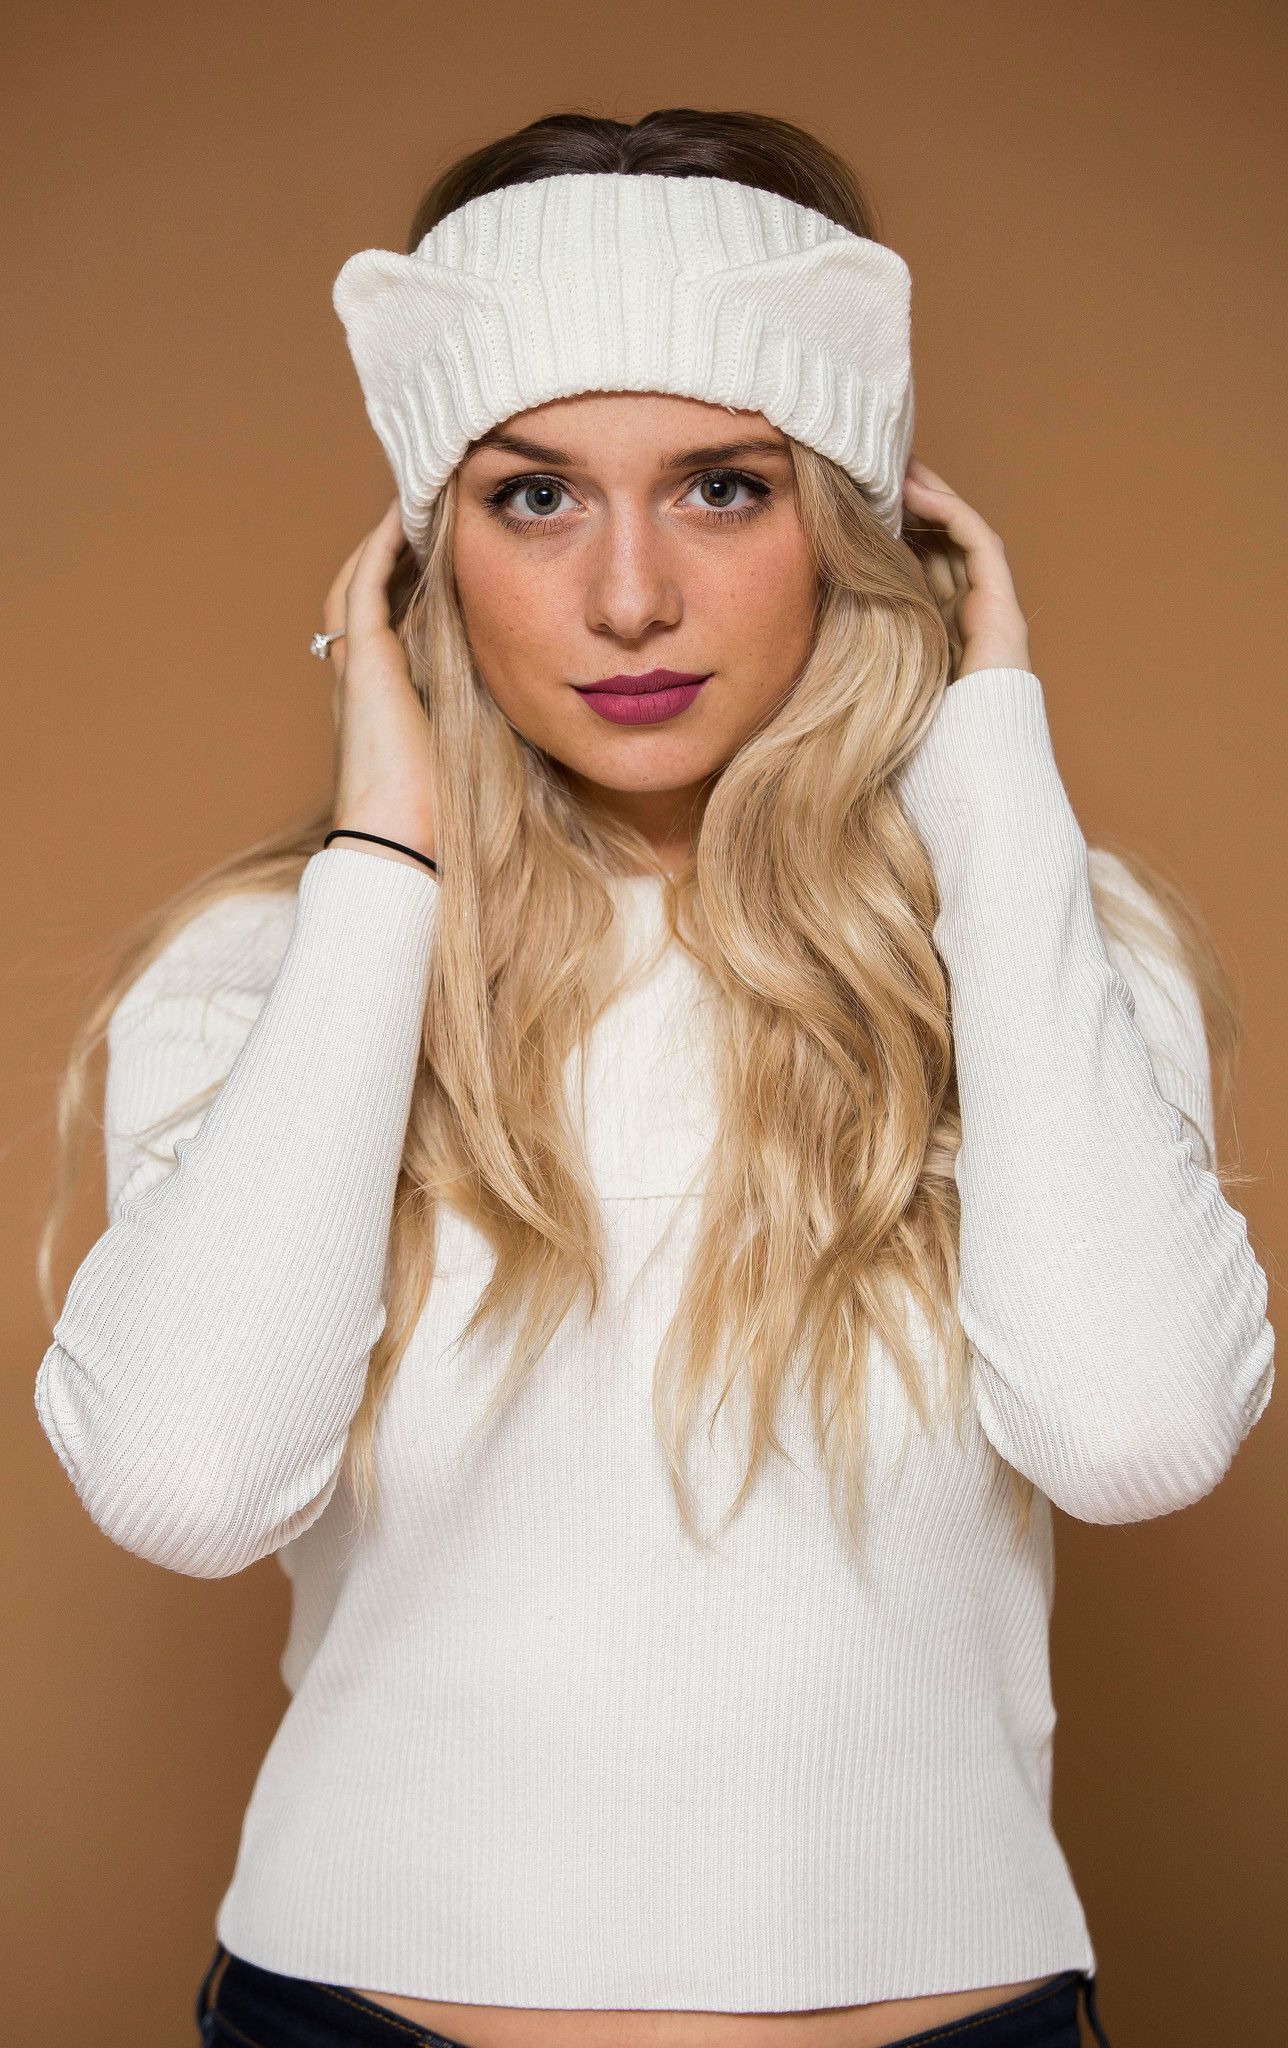 Cat Ears White Knit Headband Hat (With images) Cat ears